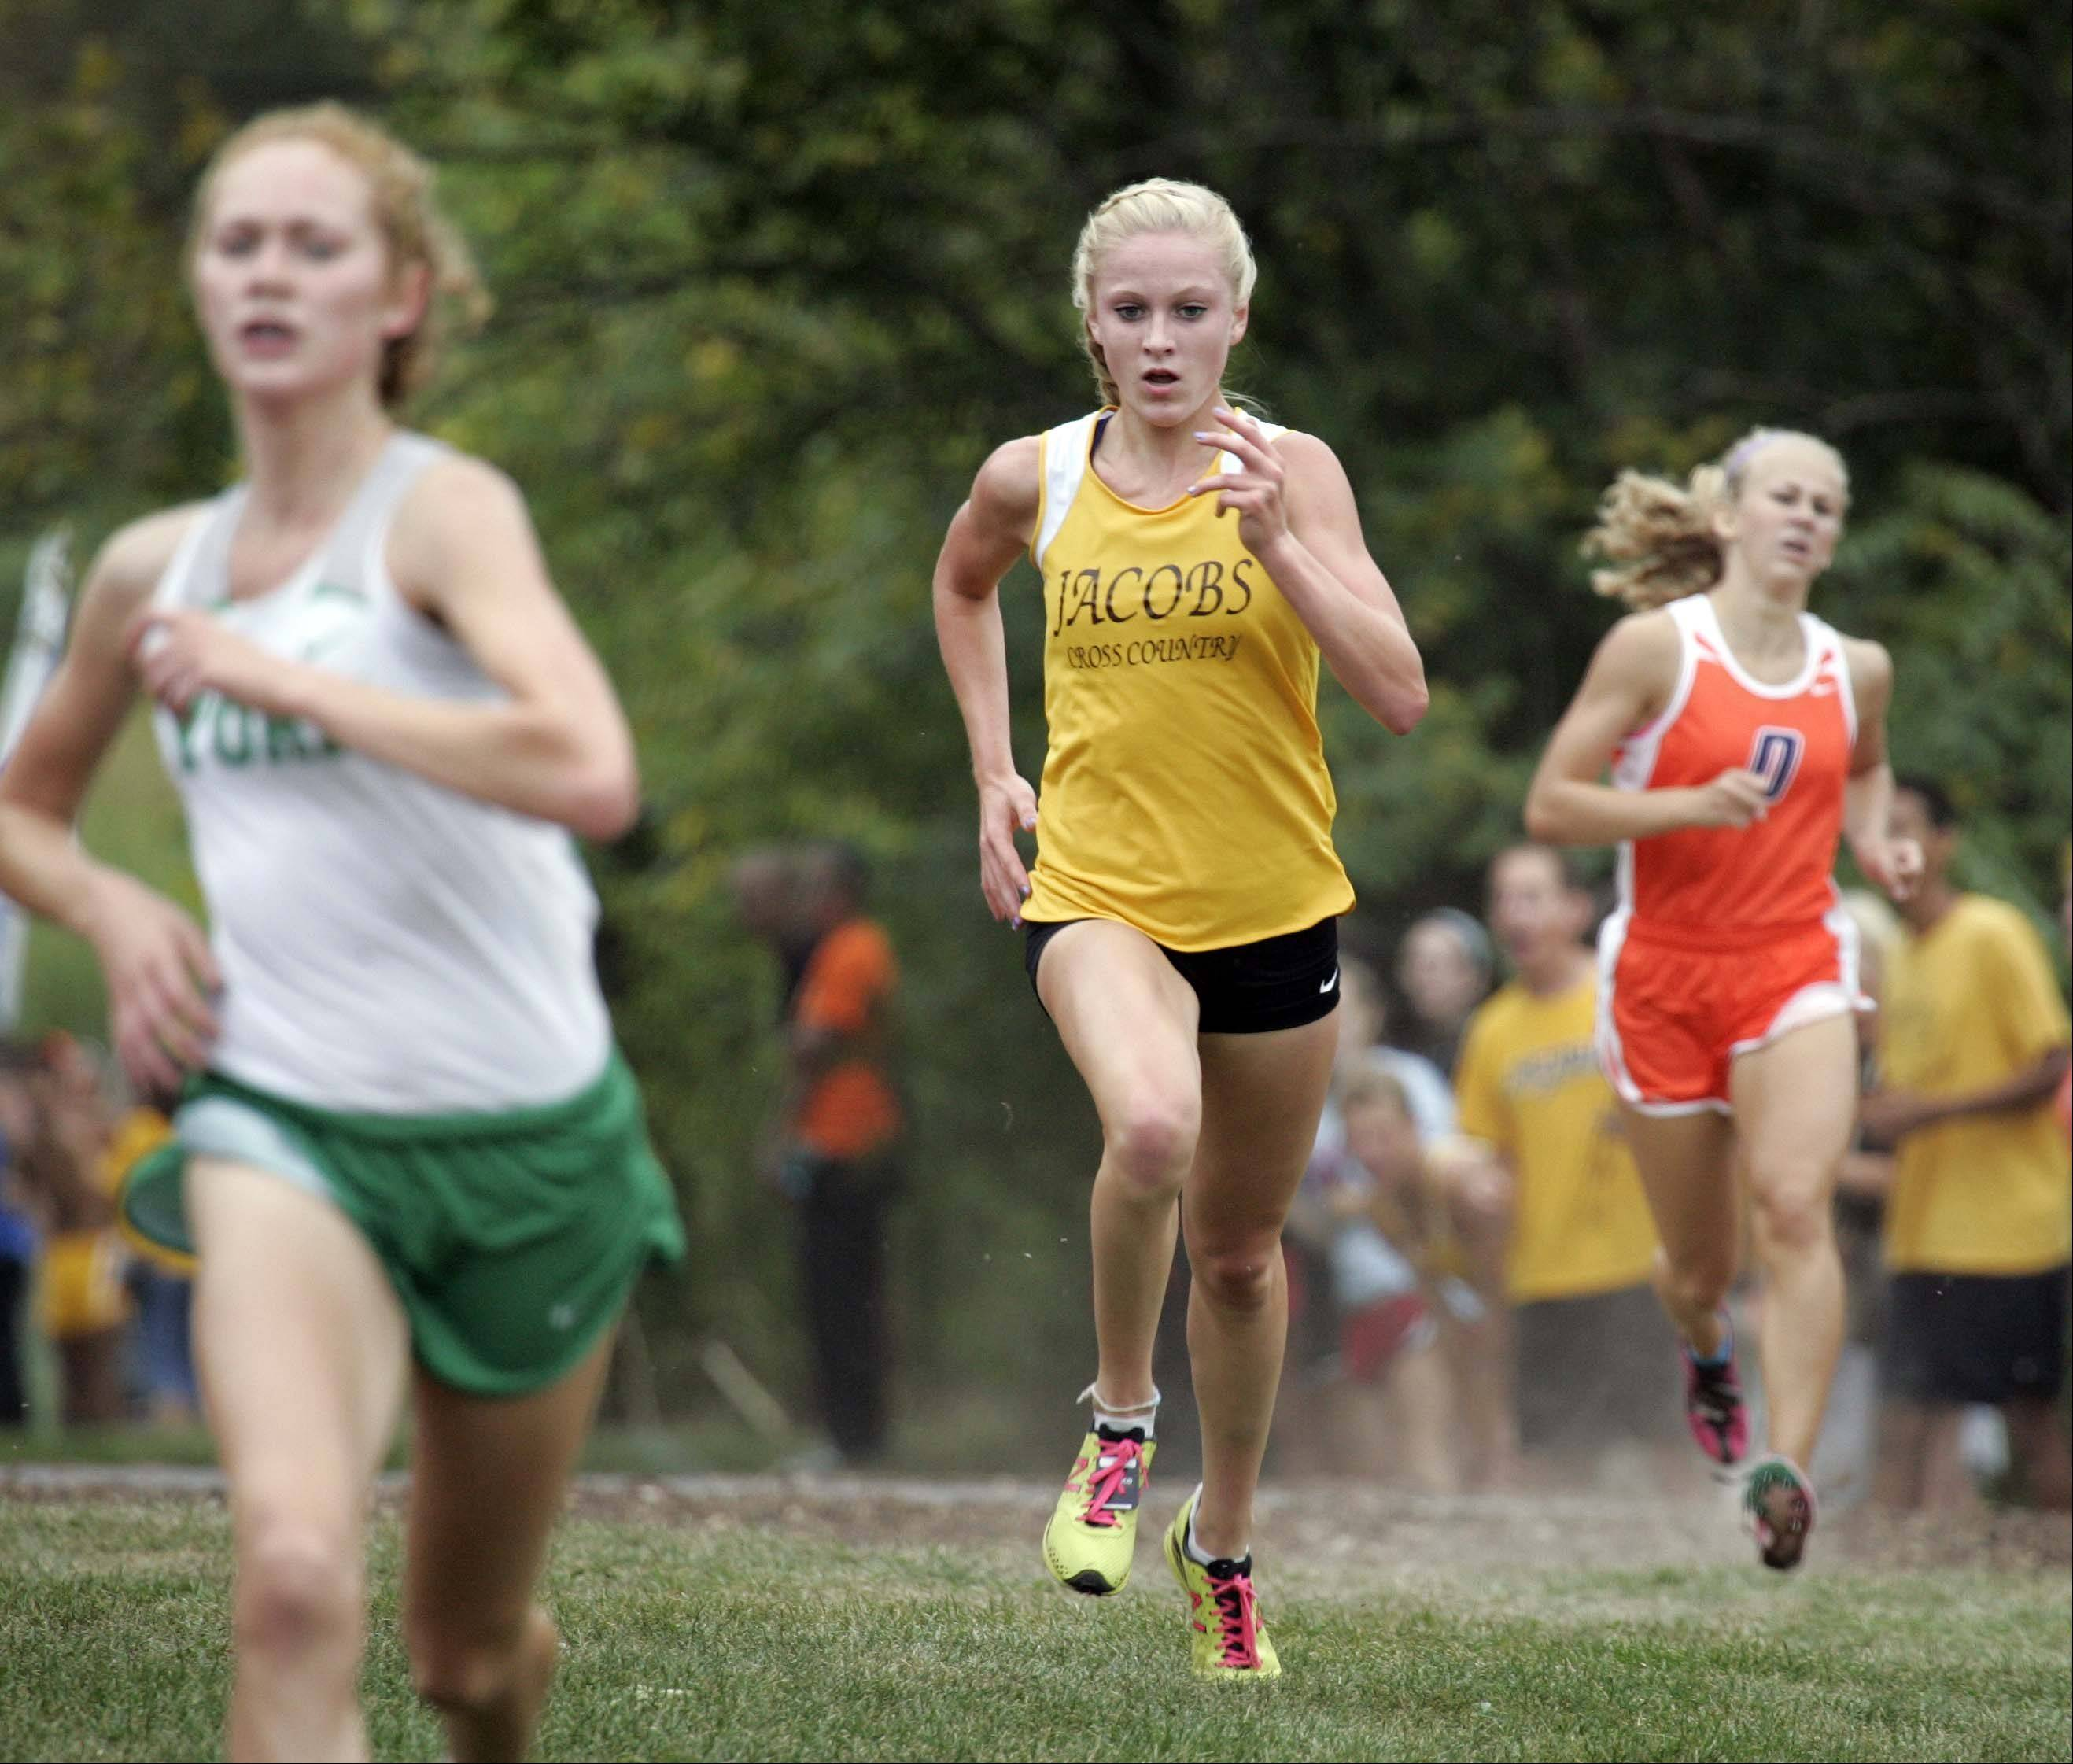 Jacobs' Lauren Van Vlierbergen races to second place during the girls varsity race at the St. Charles East cross country meet at LeRoy Oakes in St. Charles Saturday September 1, 2012.